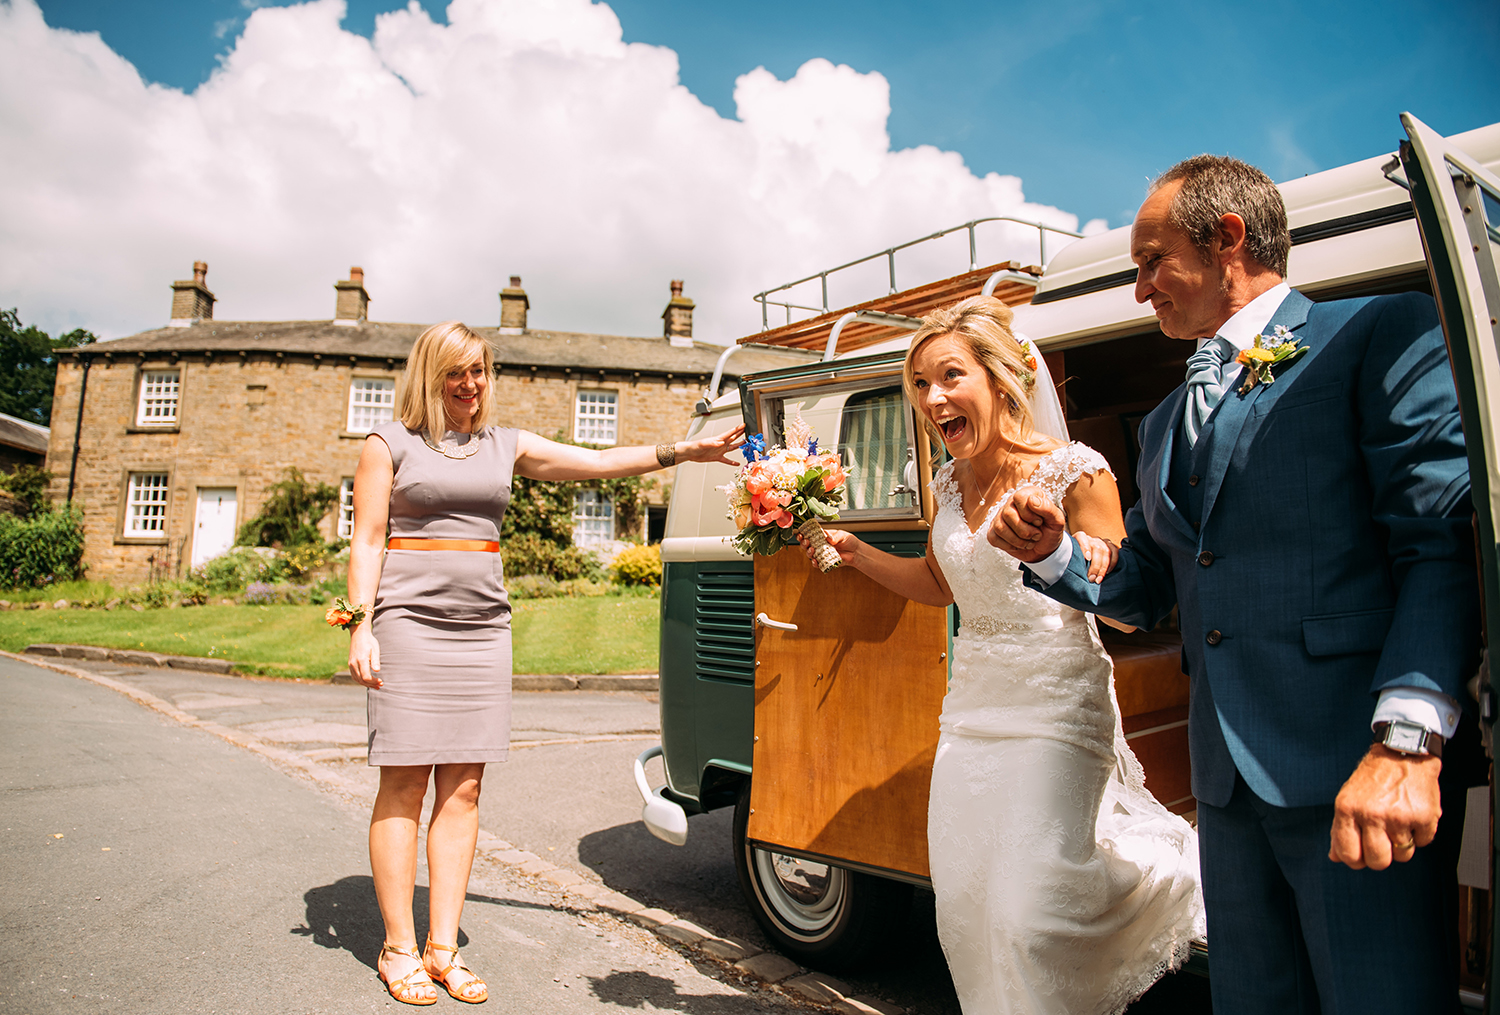 excited bride gets out of the camper helped by her father